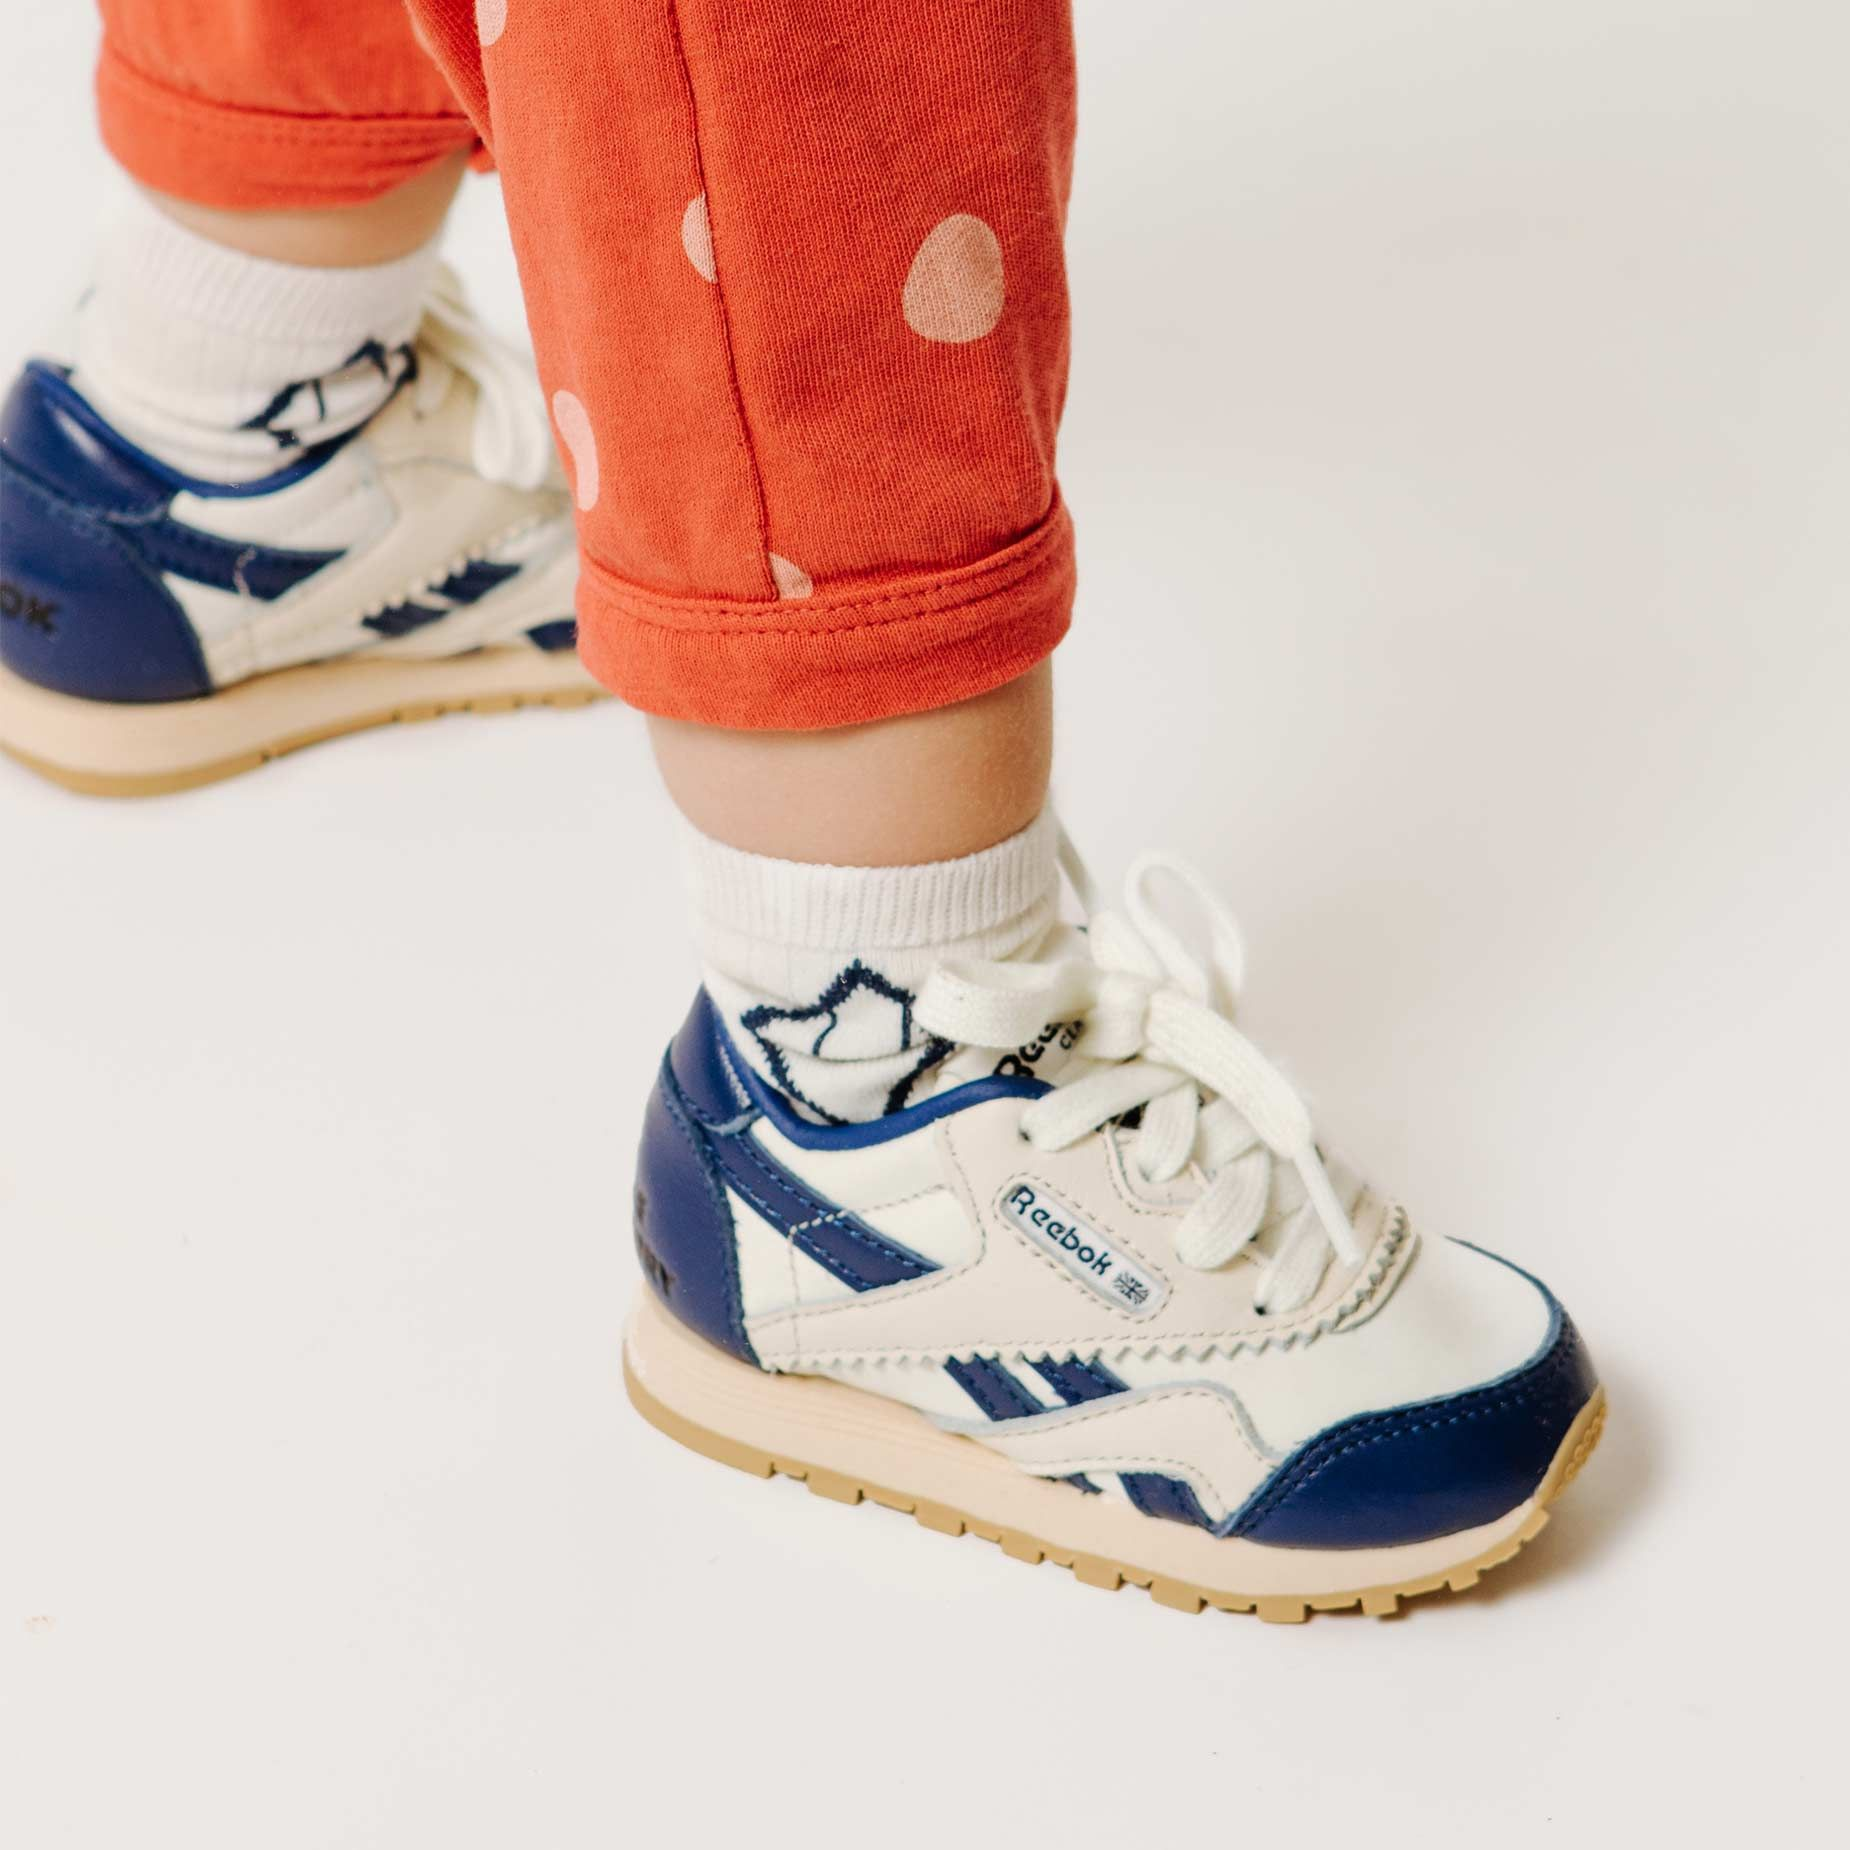 Reebok x The Animals Observatory Classic Nylon Navy Baby img-6